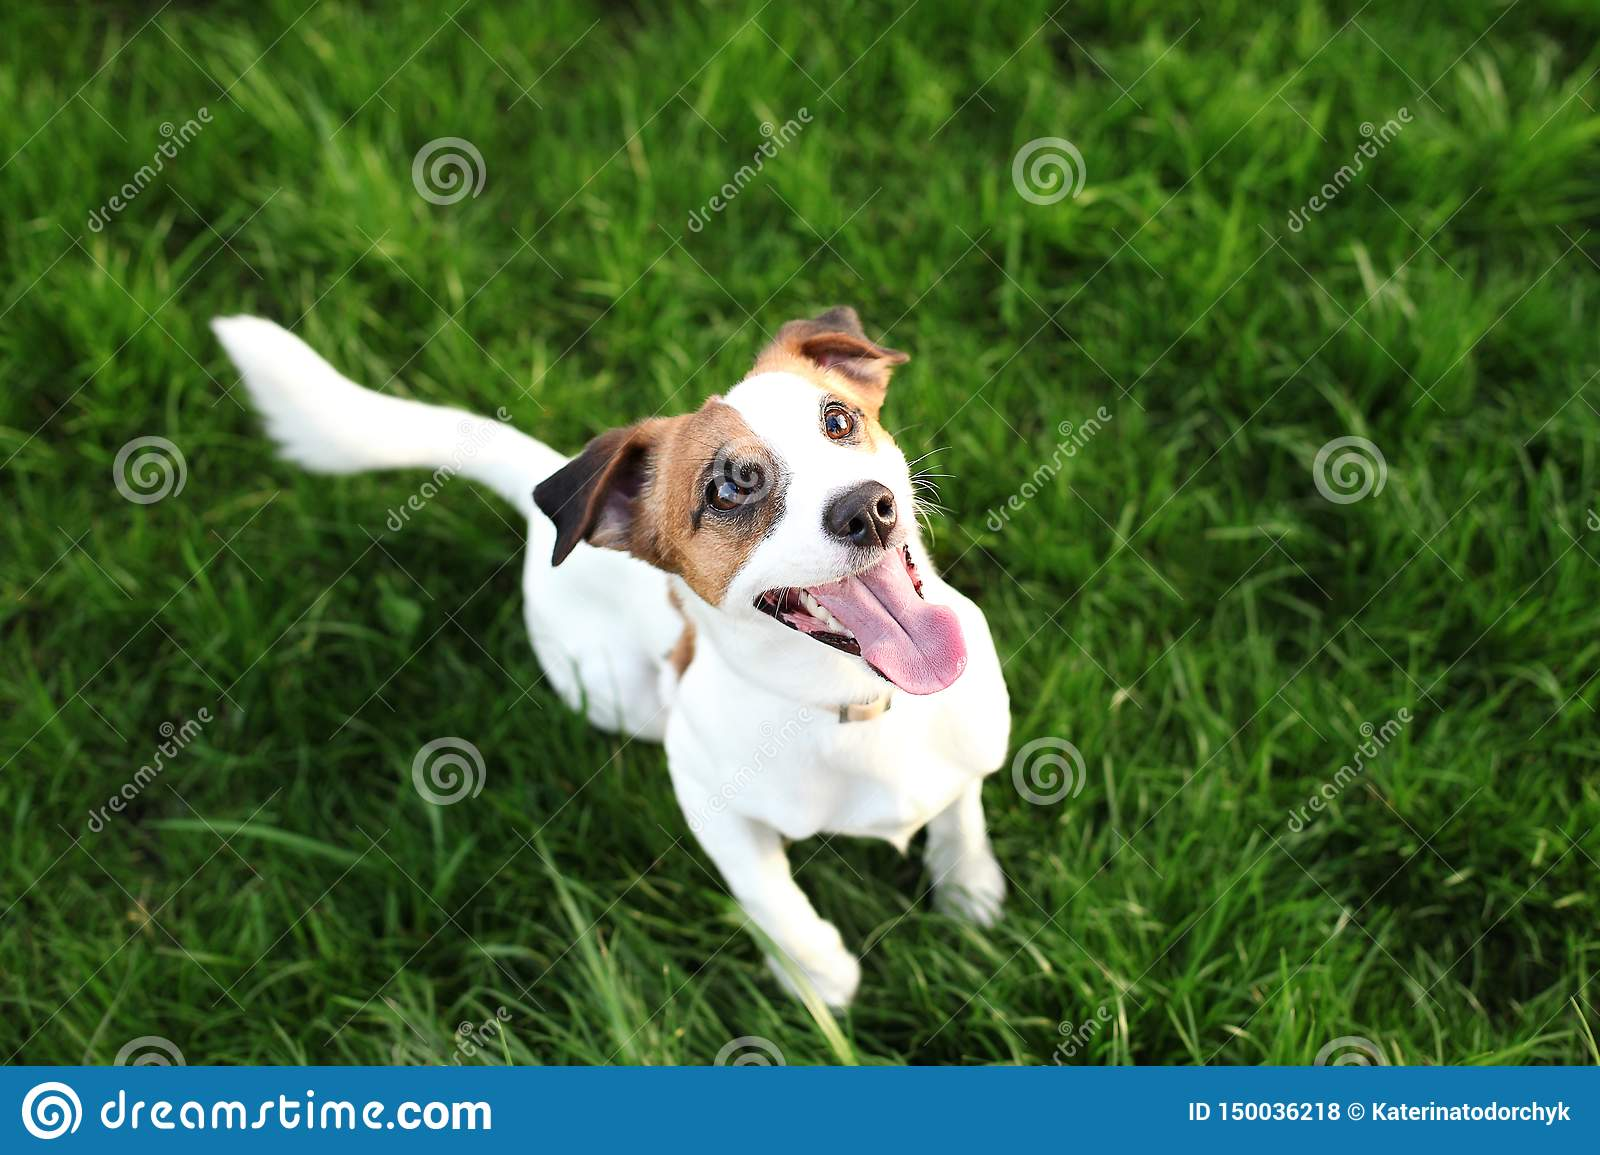 Purebred Jack Russell Terrier dog outdoors on nature in the grass on a summer day. Happy dog ​​sits in the park.